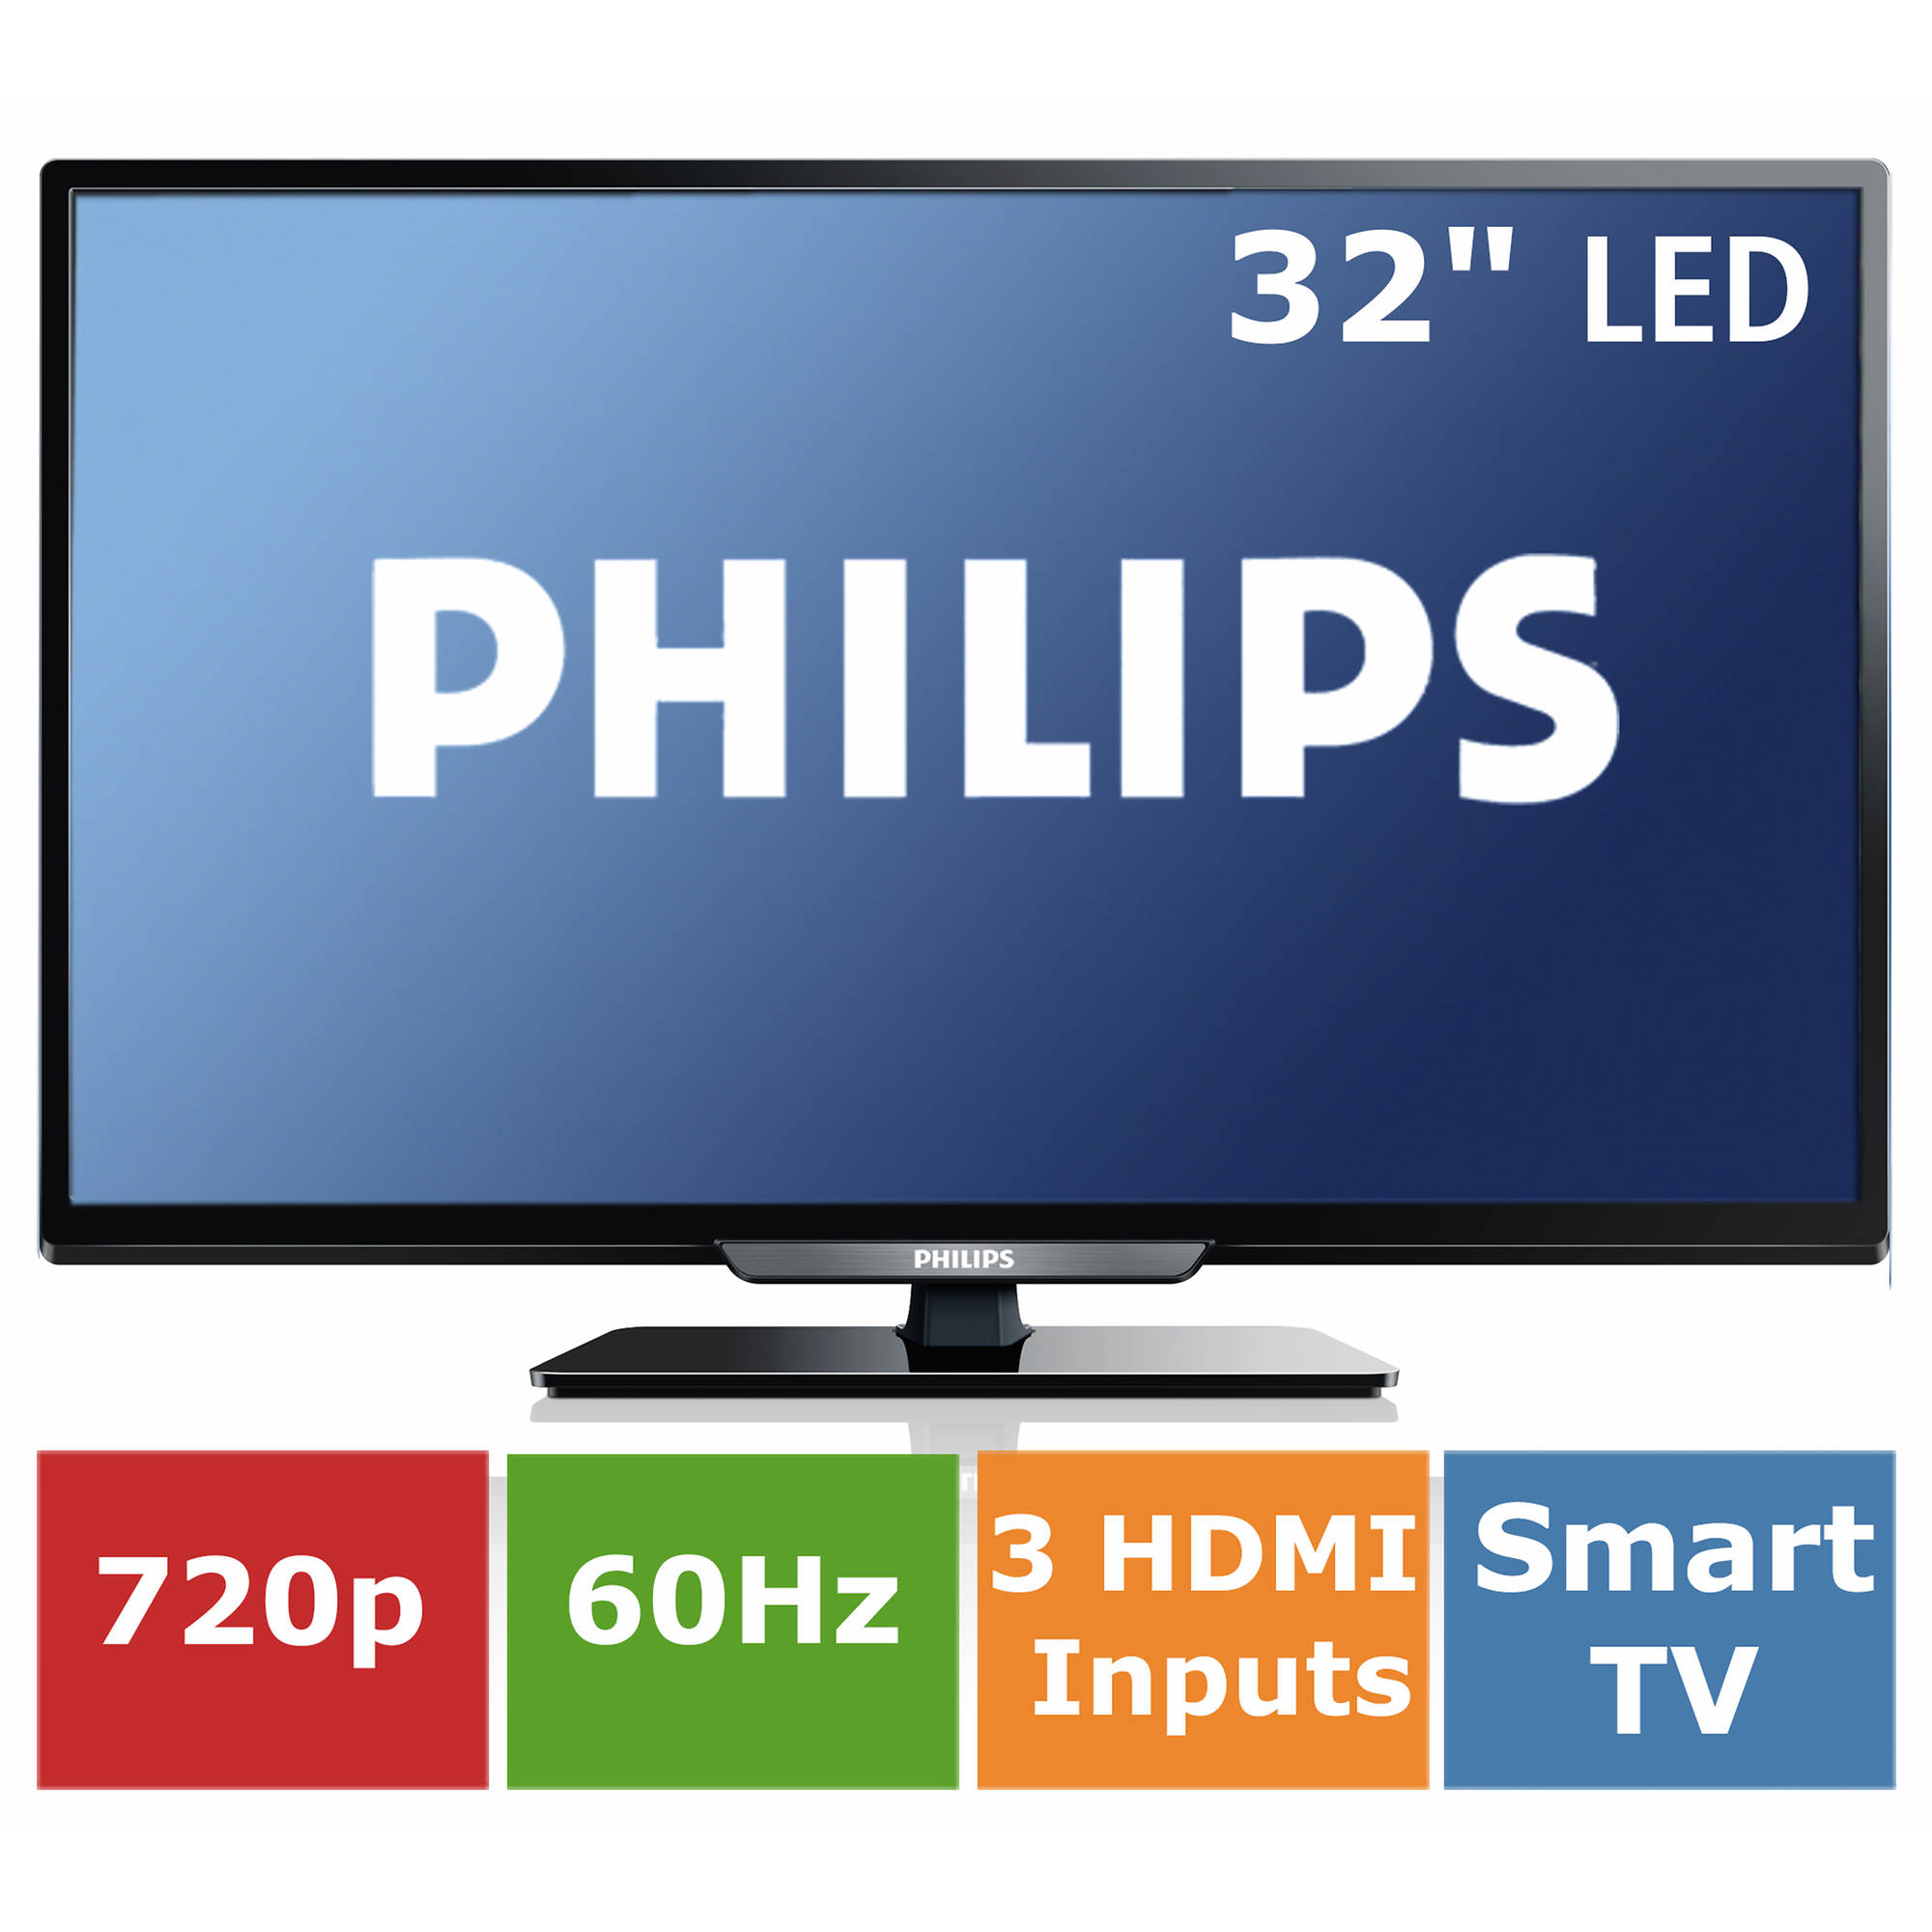 how to use philips smart tv